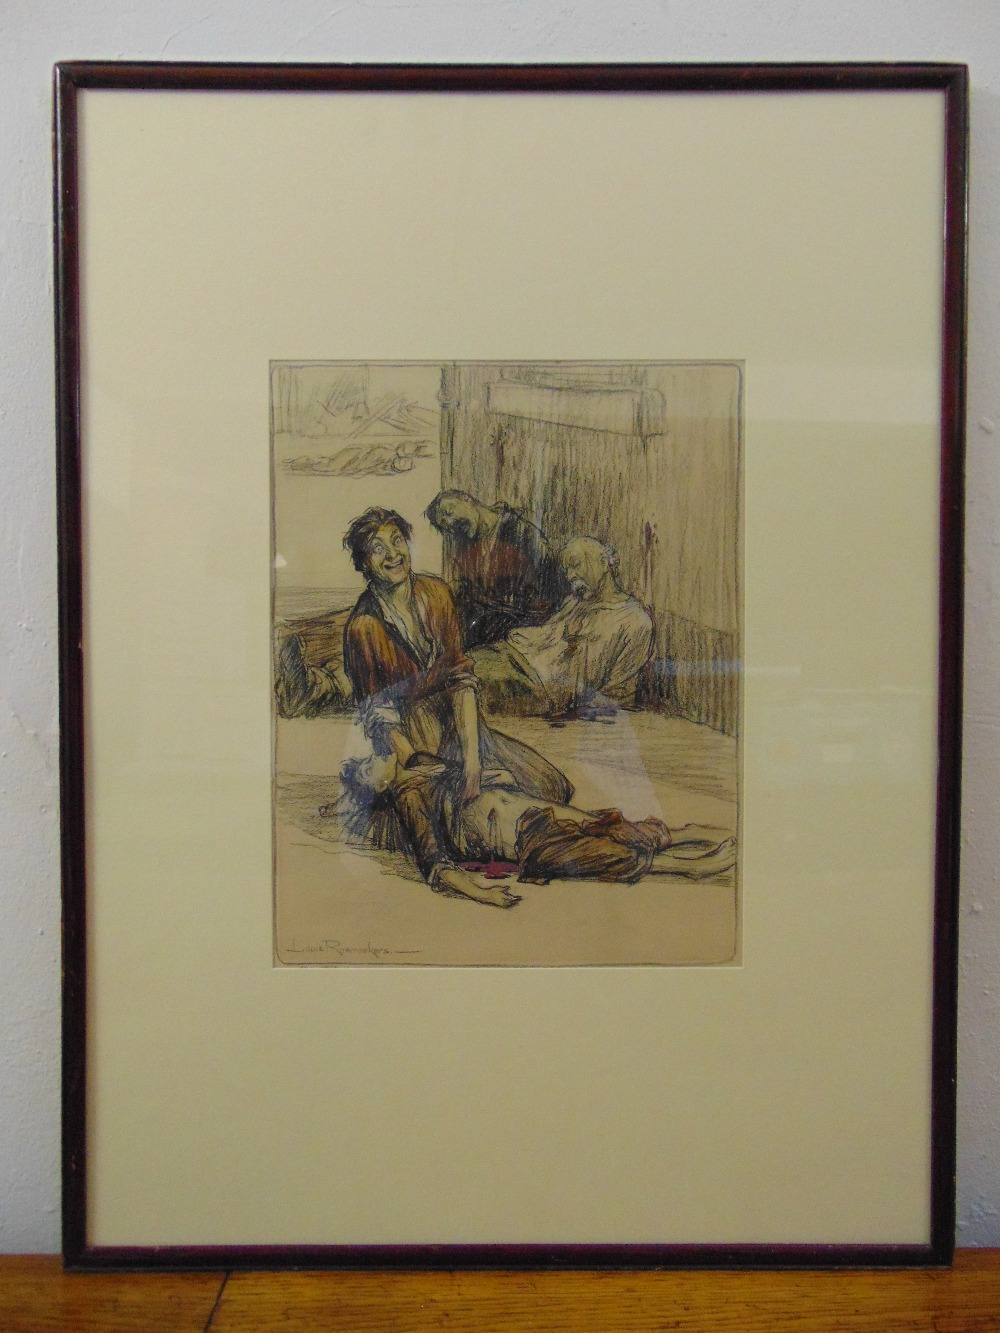 Lot 34 - Louis Raemaekers framed and glazed polychromatic drawing titled Mater Dolorosa, signed bottom